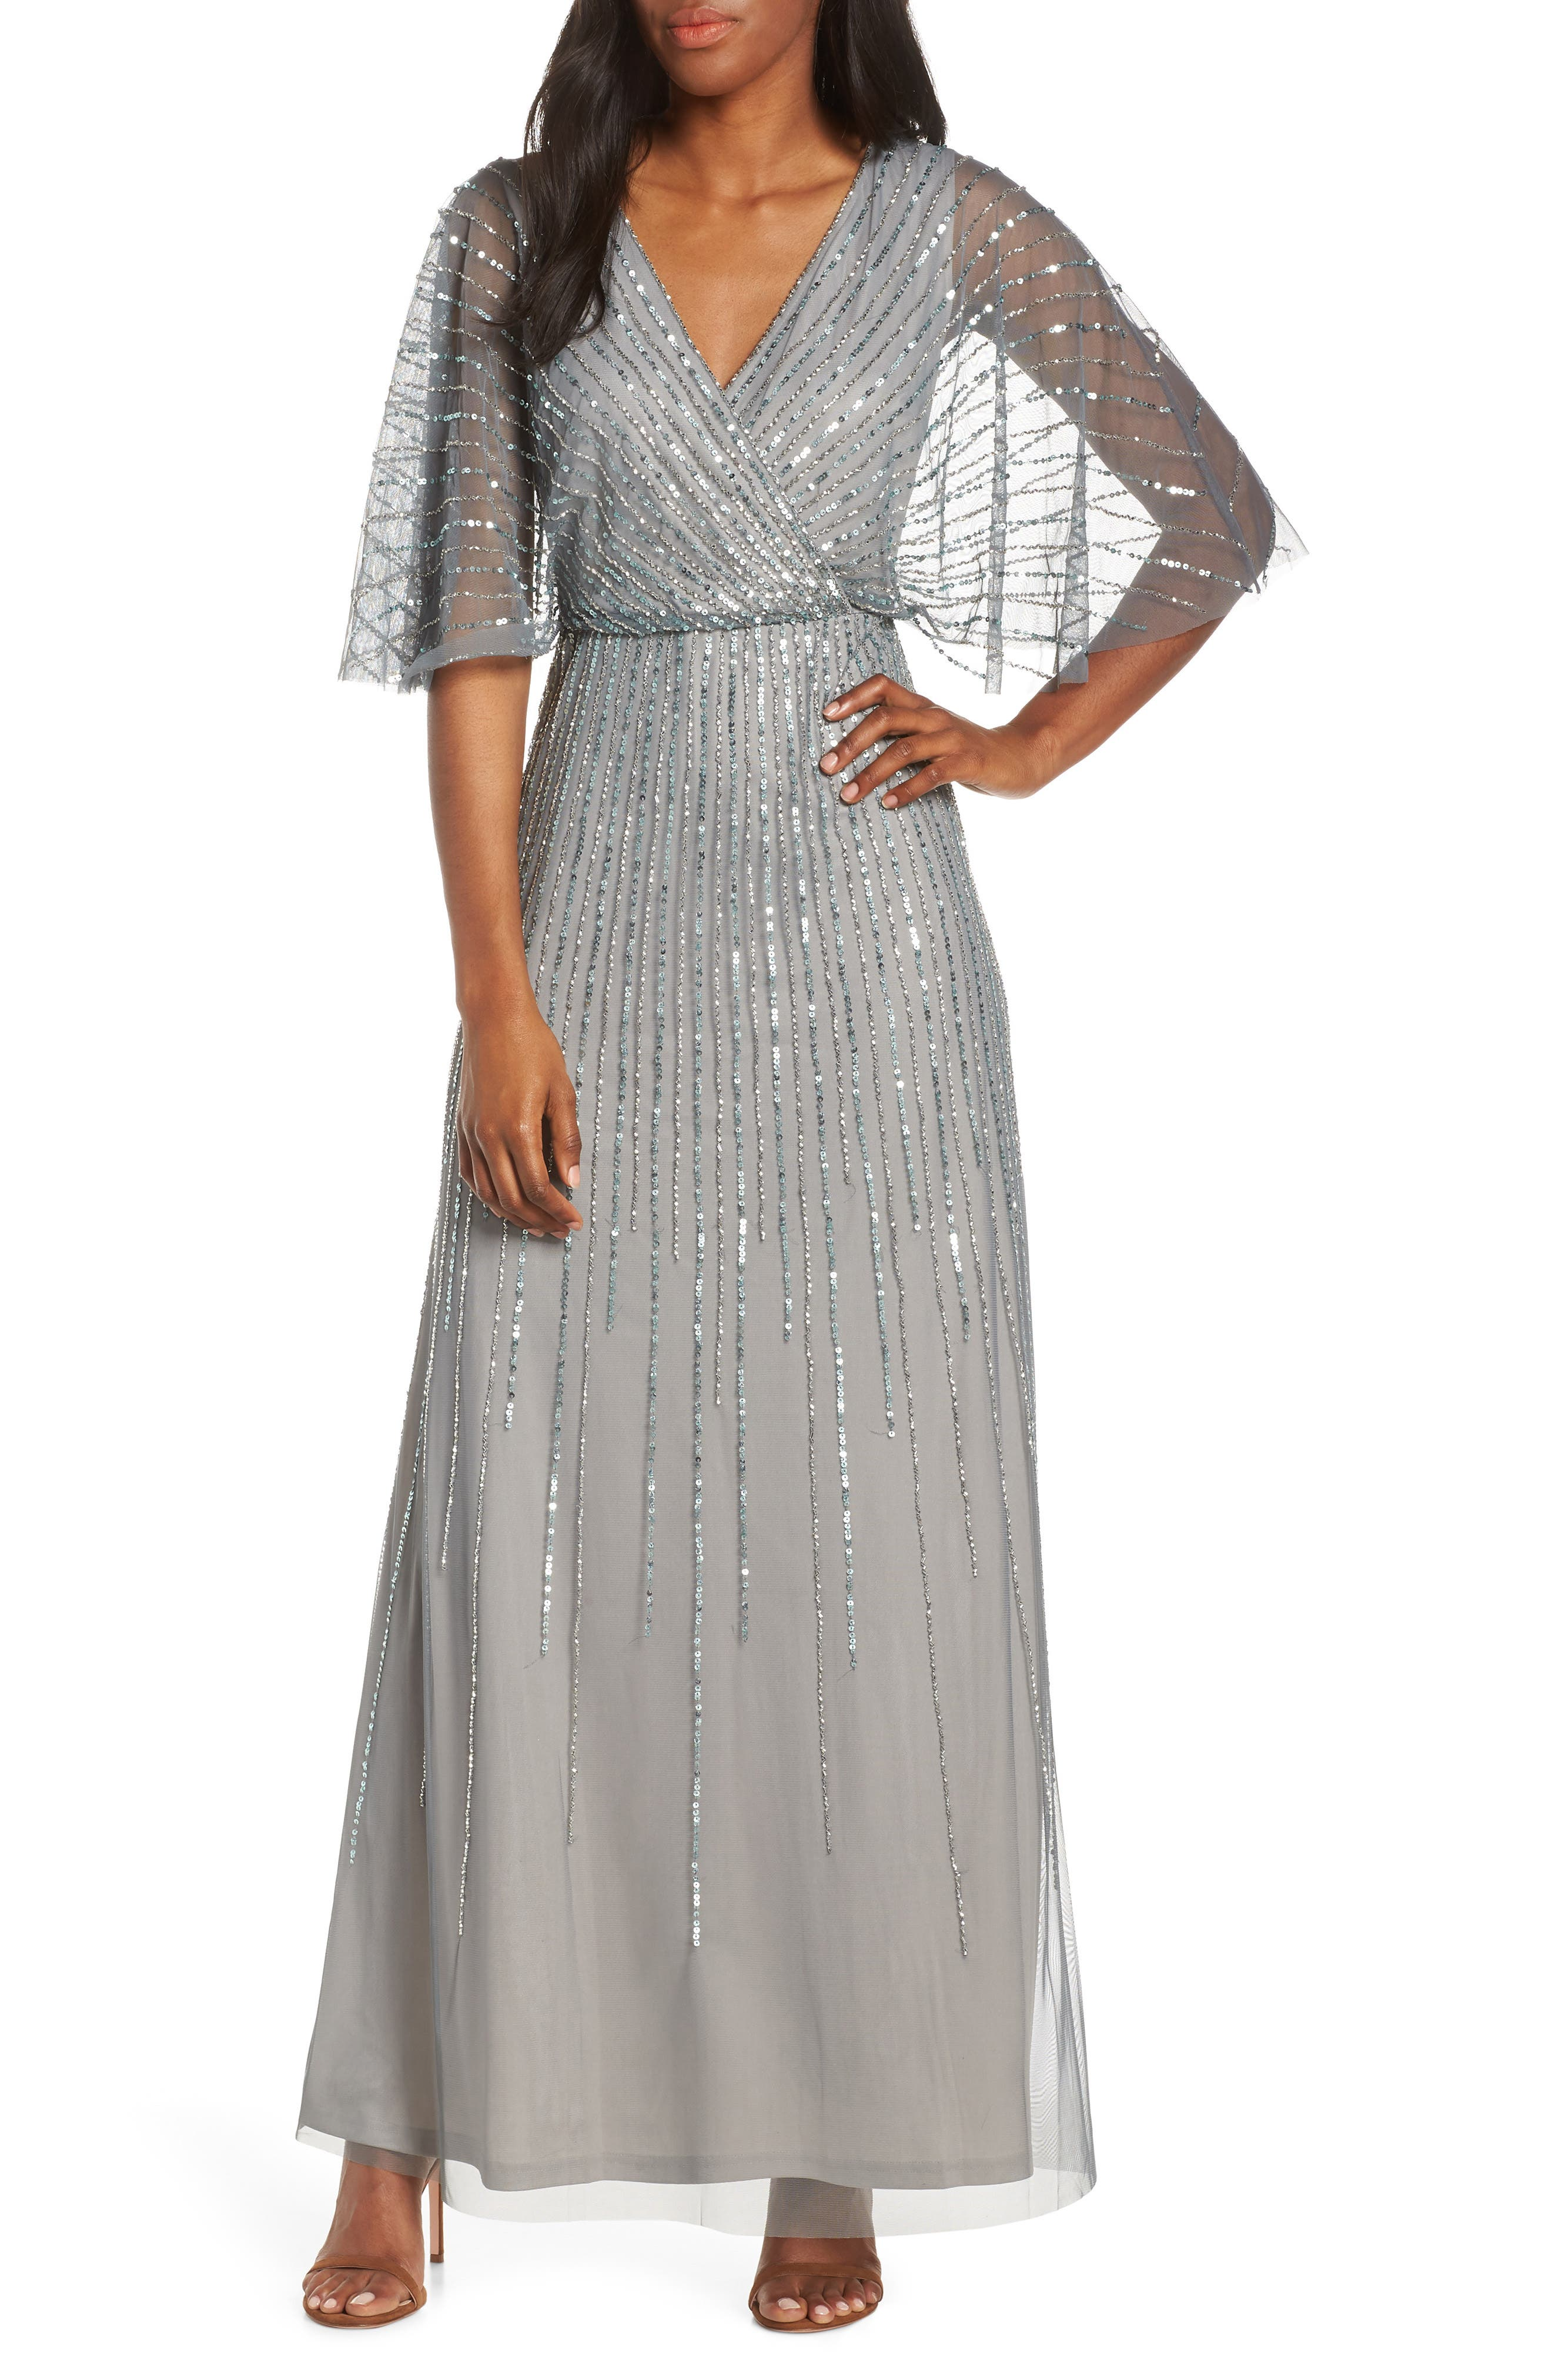 1930s Dresses | 30s Art Deco Dress Womens Adrianna Papell Sequin Stripe Mesh Evening Dress $279.00 AT vintagedancer.com